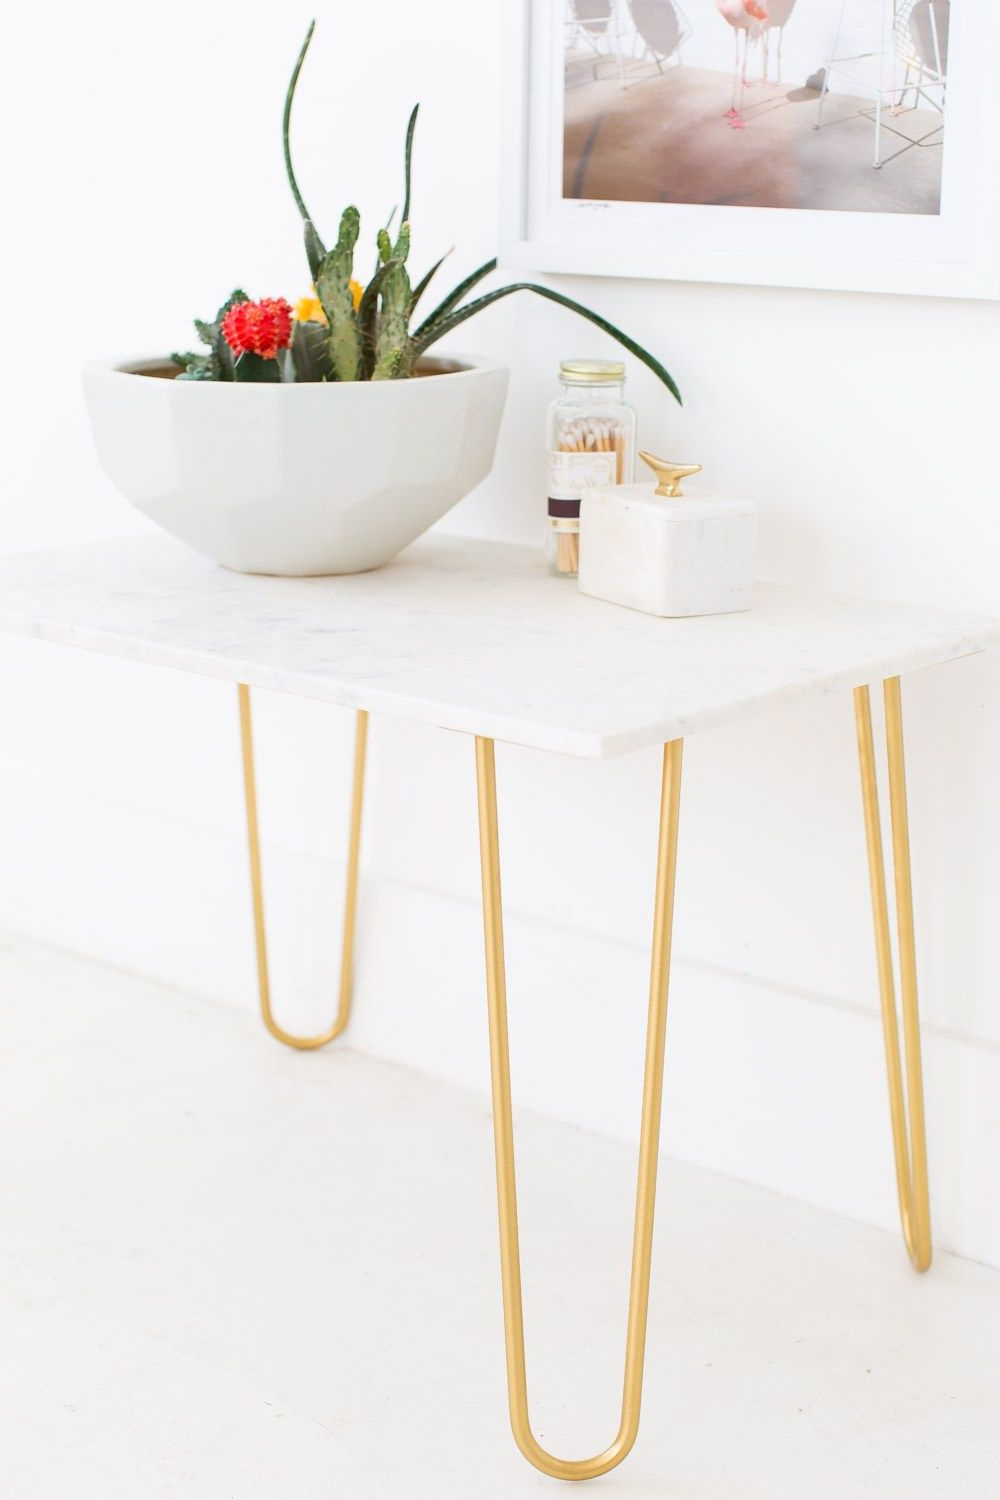 diy accent table ideas and marble gold marbles sugaring black mirror coffee antique brass oriental lamps commercial nic tables small round tablecloth copper side scandinavian